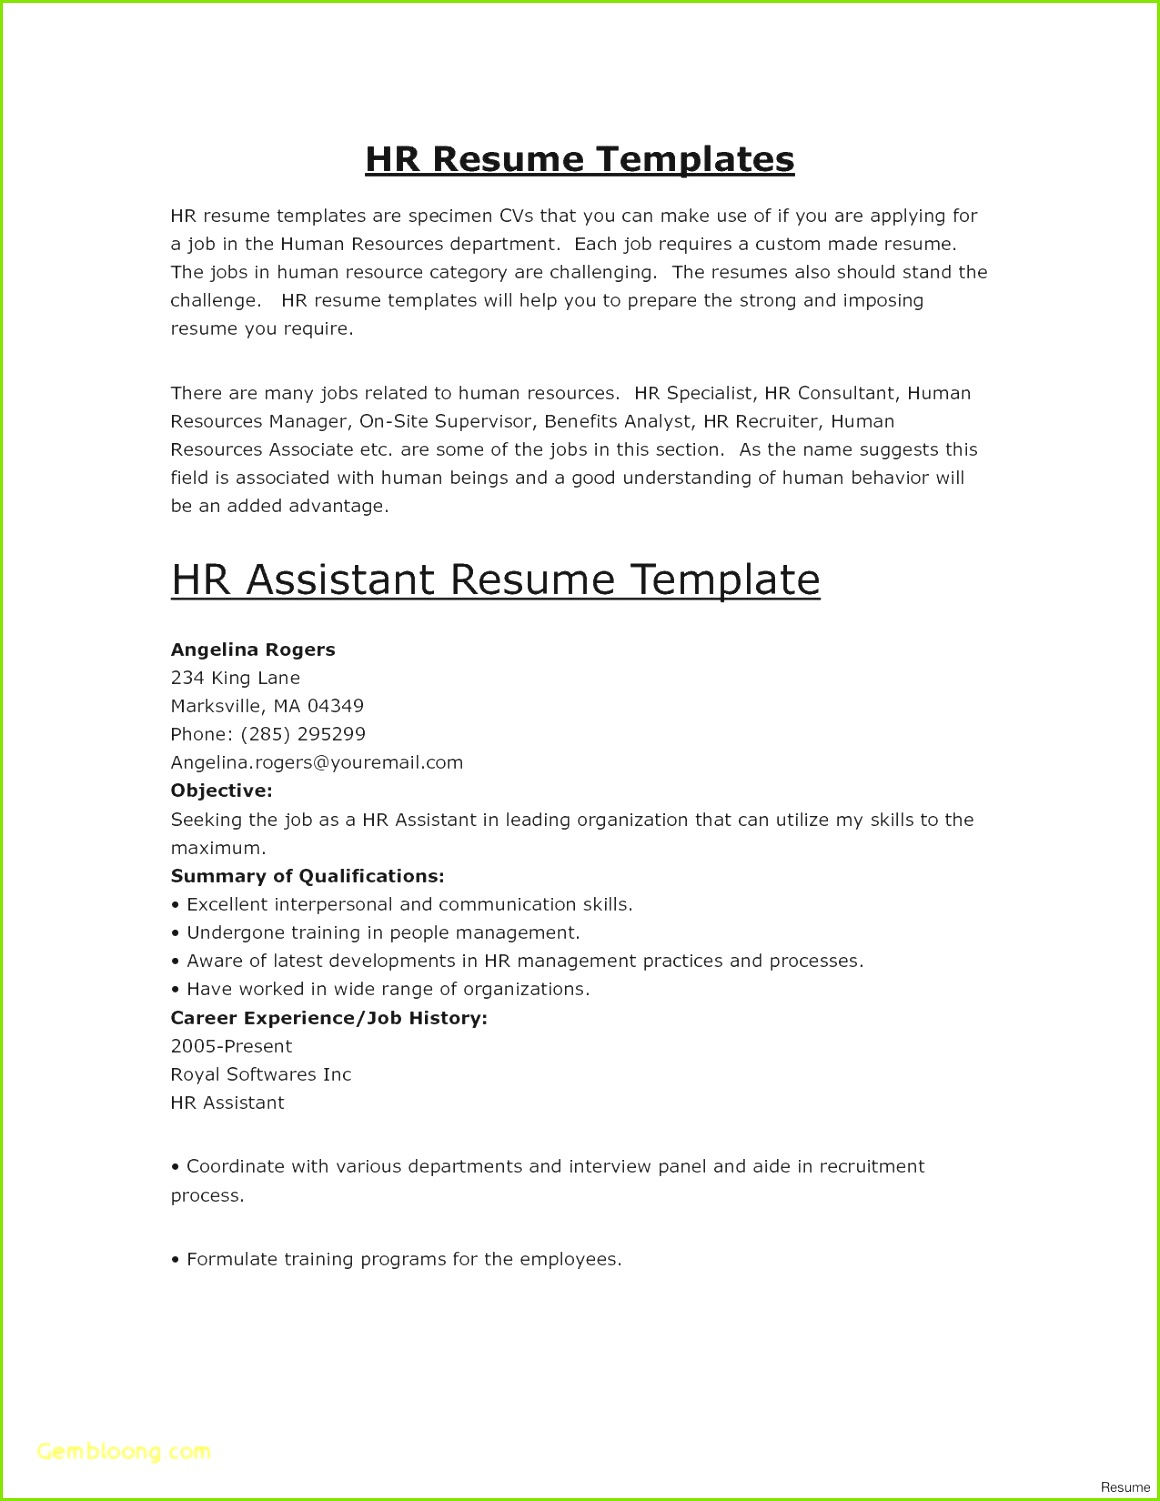 letter of good conduct template cover letter for resume template elegant awesome pr resume template elegant